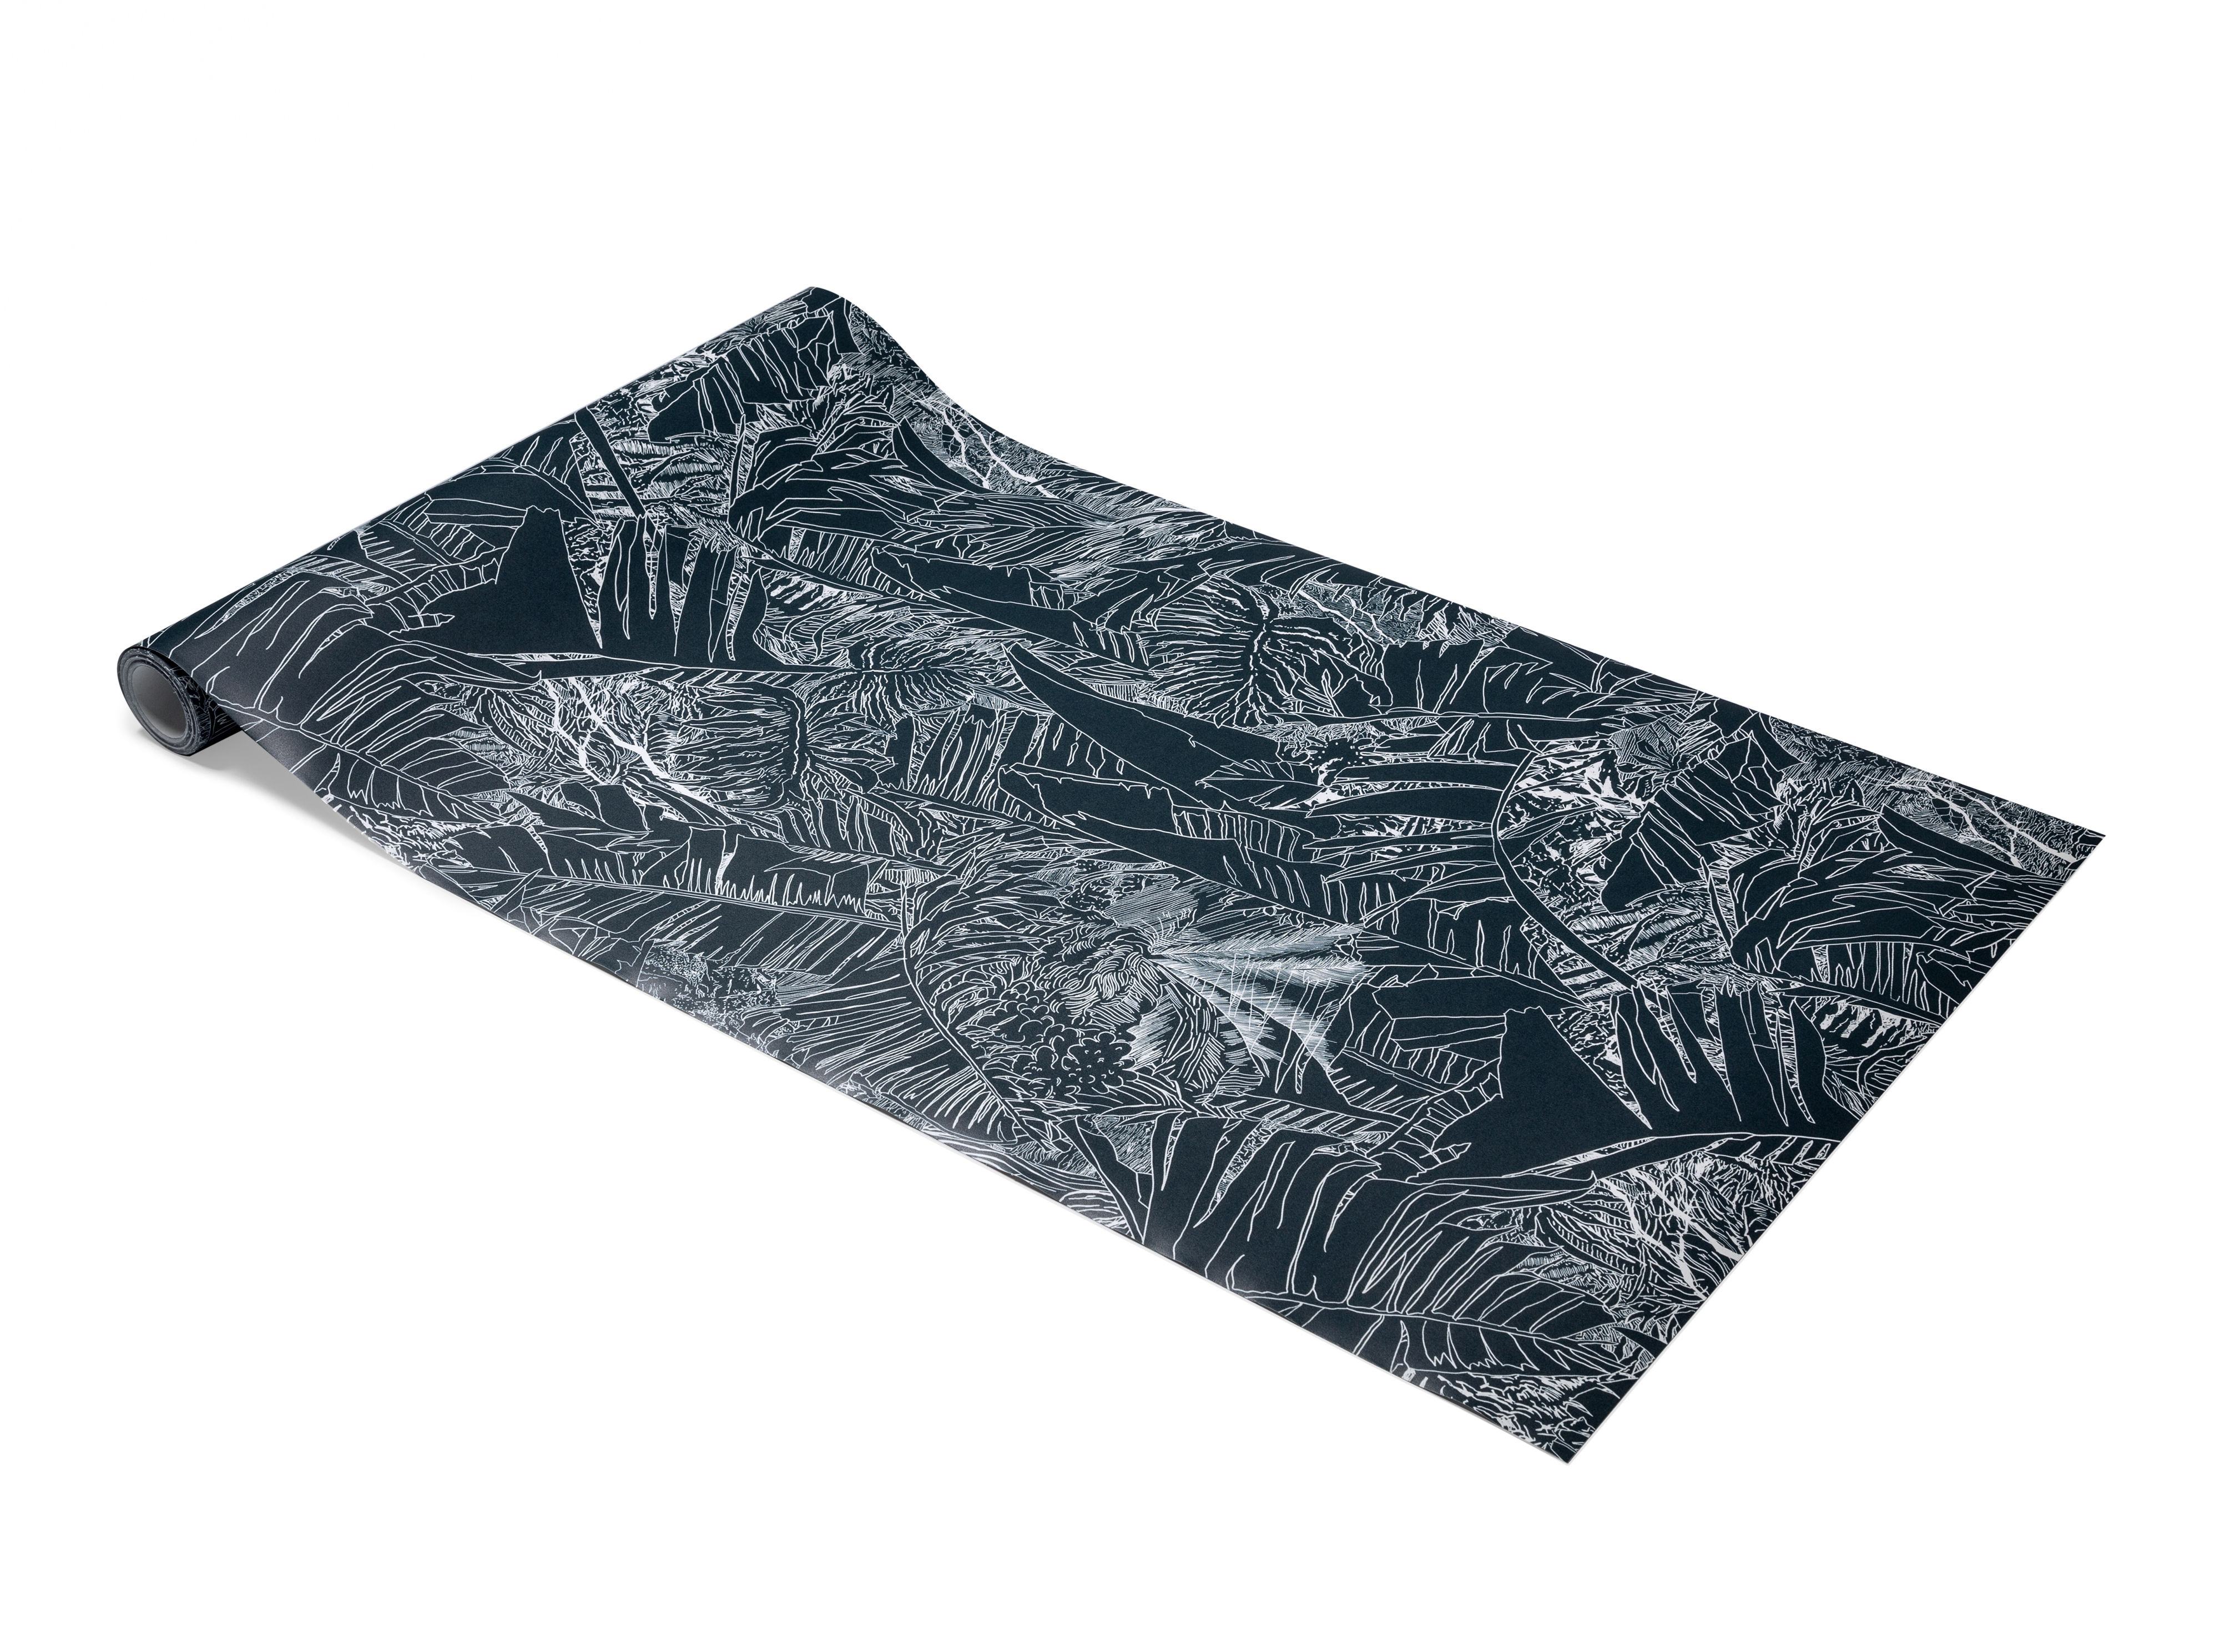 Decoration - Wallpaper & Wall Stickers - Jungle Wallpaper - 1 roll - W 70 cm by Petite Friture - White on black - Intisse paper